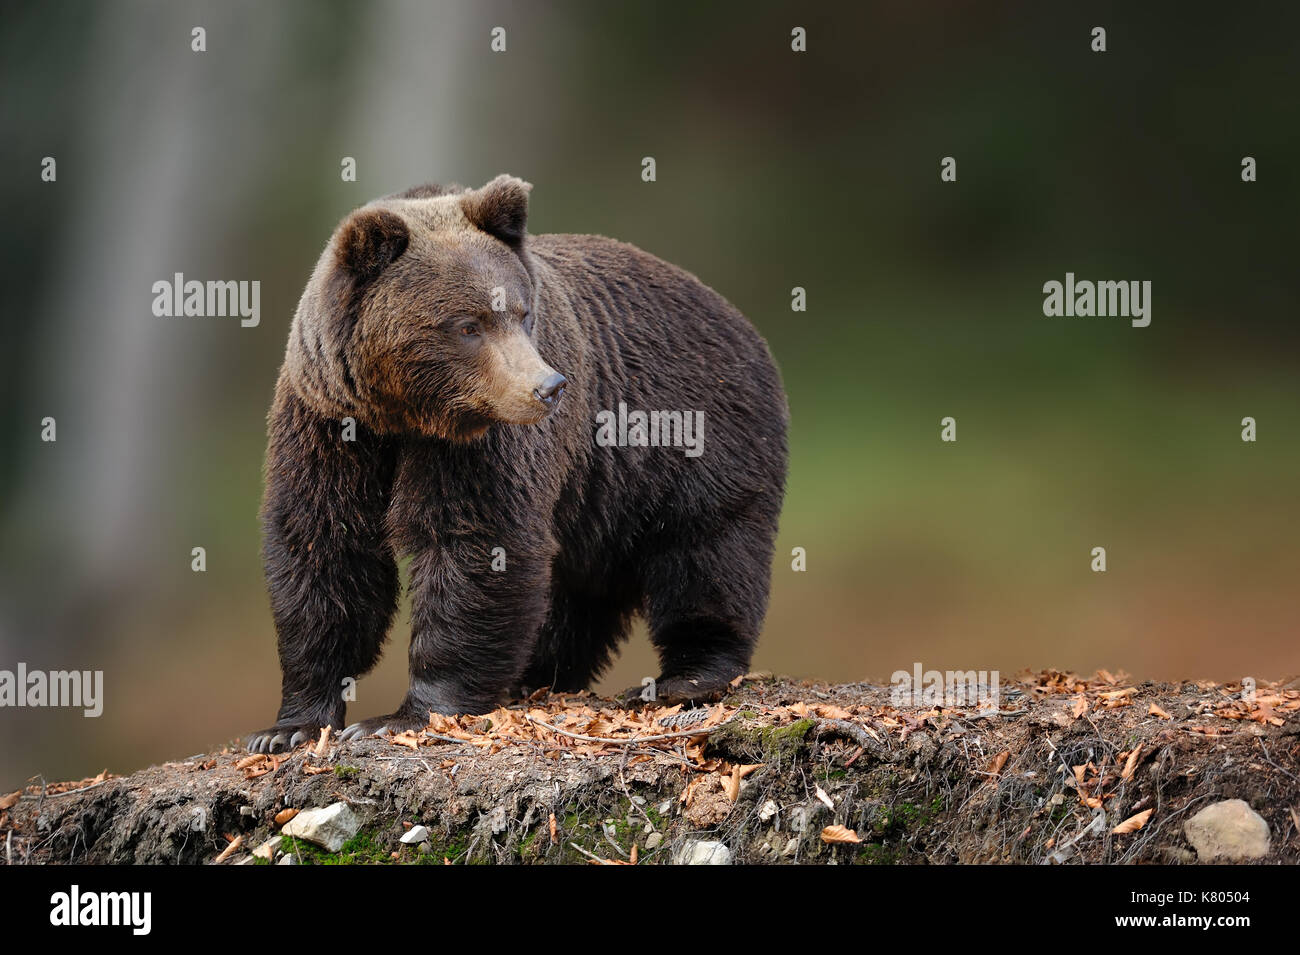 Big brown bear in the nature habitat. Wildlife scene from nature. Dangerous animal in nature - Stock Image